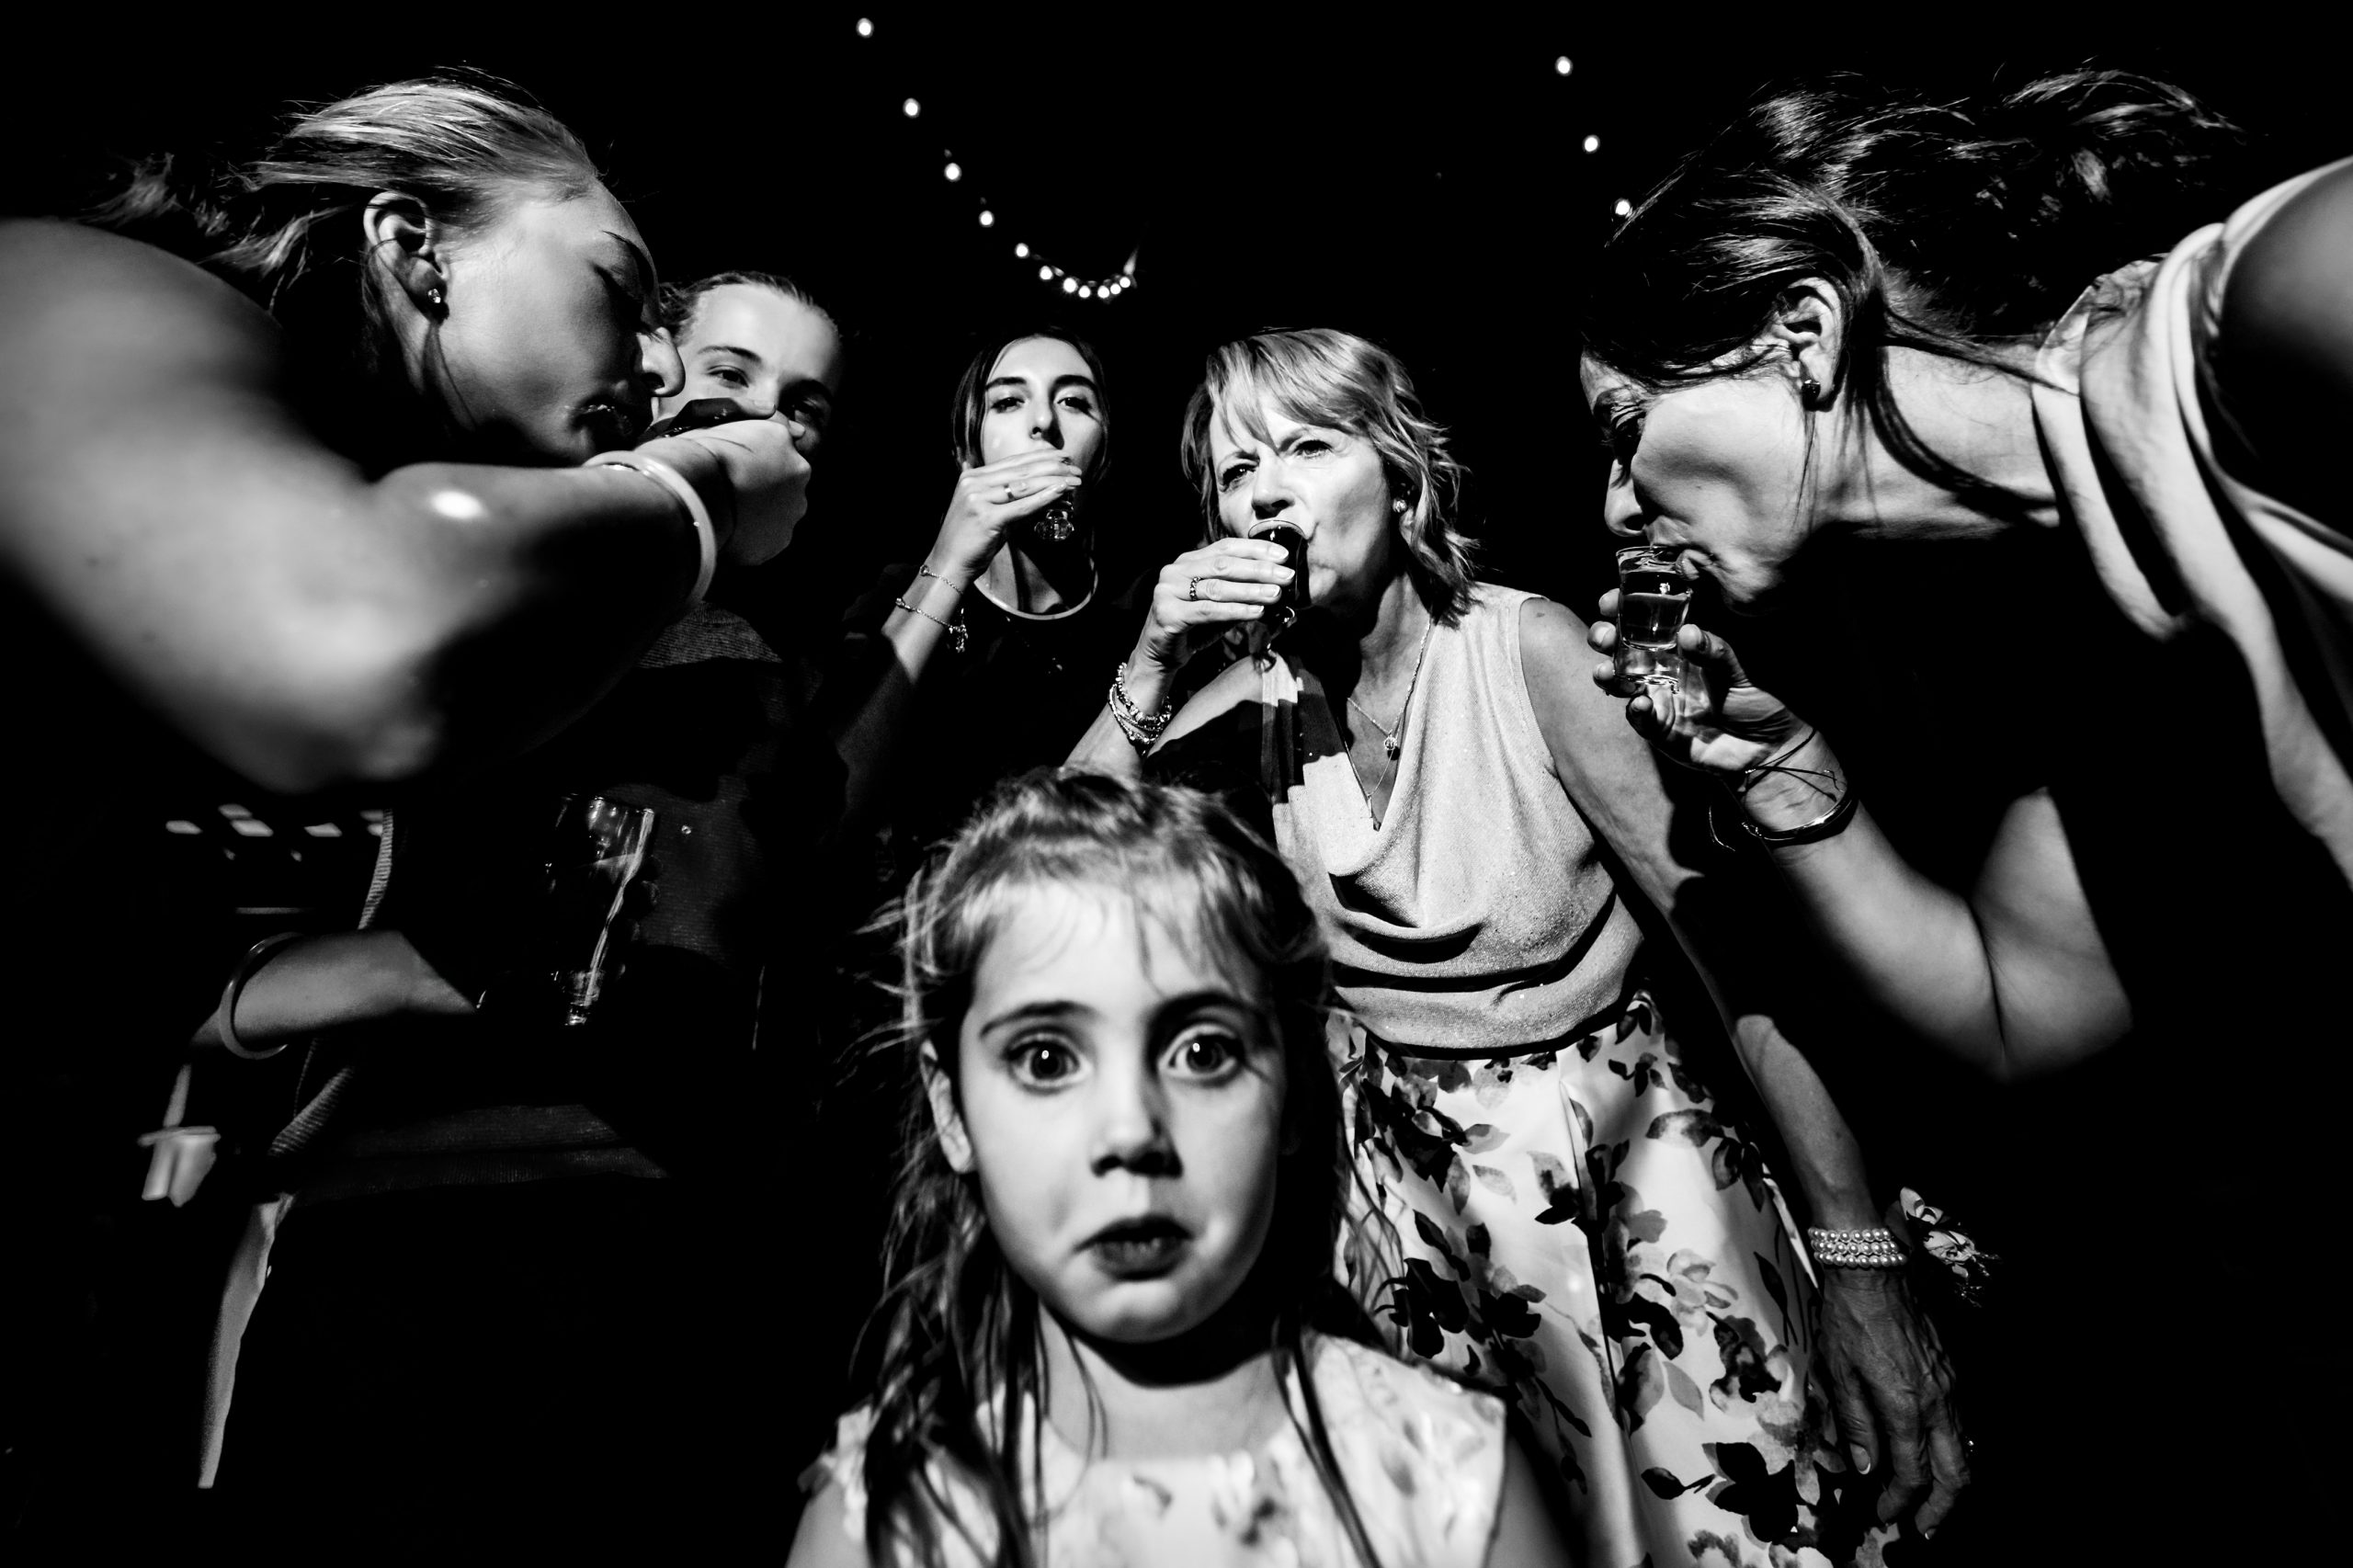 Young girl is surrounded by weddings guests having drinks.